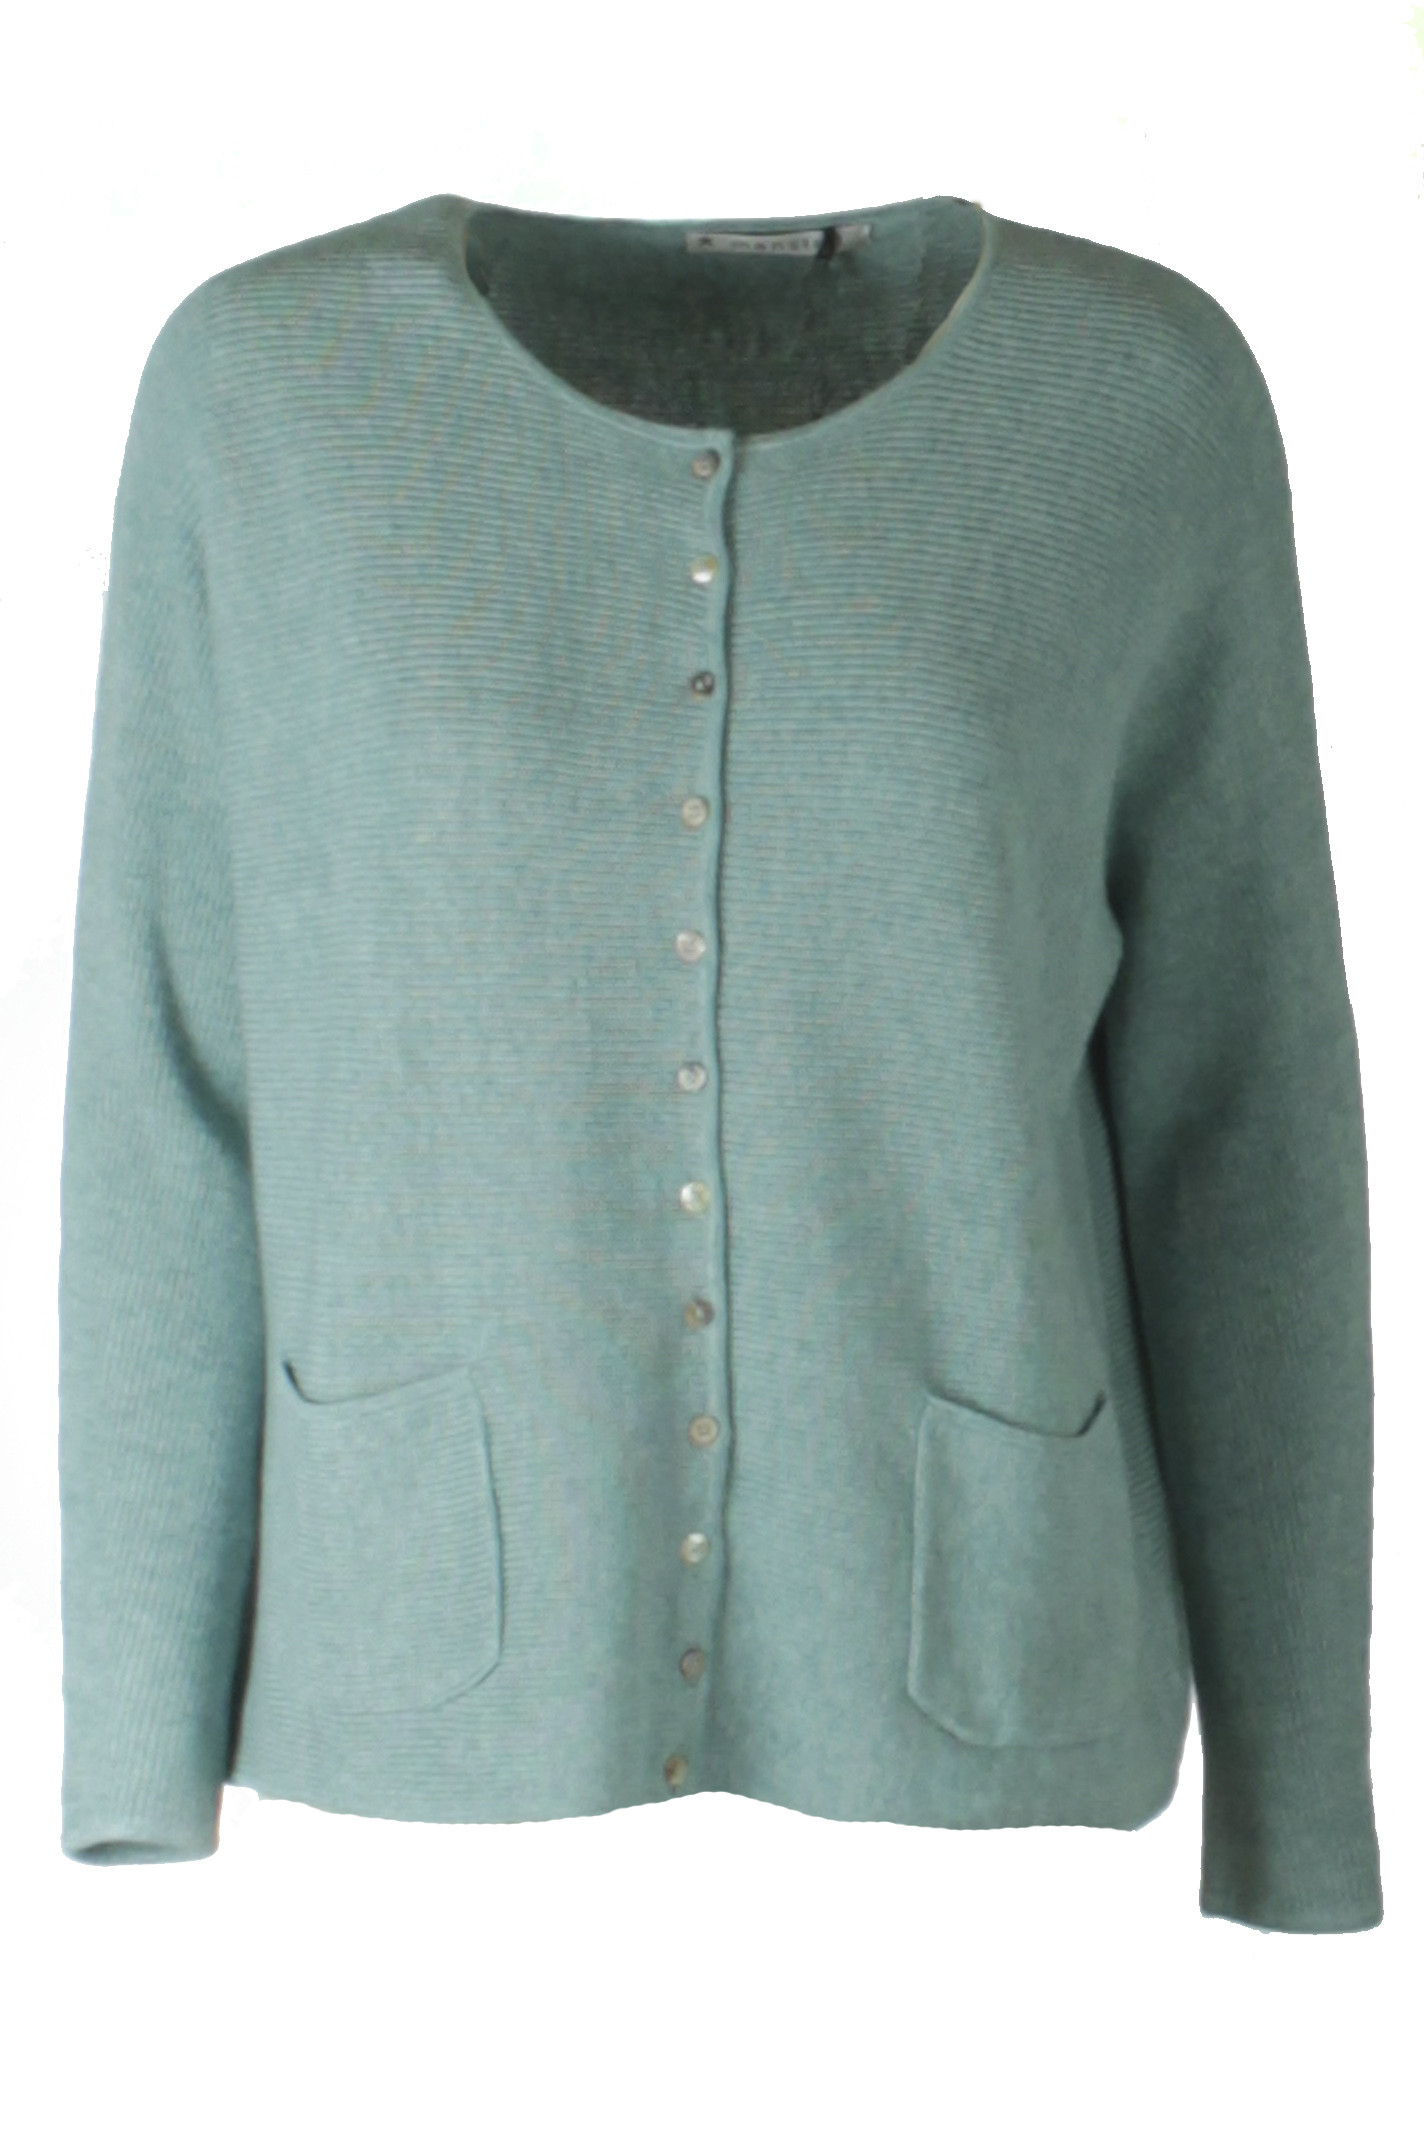 MANSTED NEA-SS20 MINT